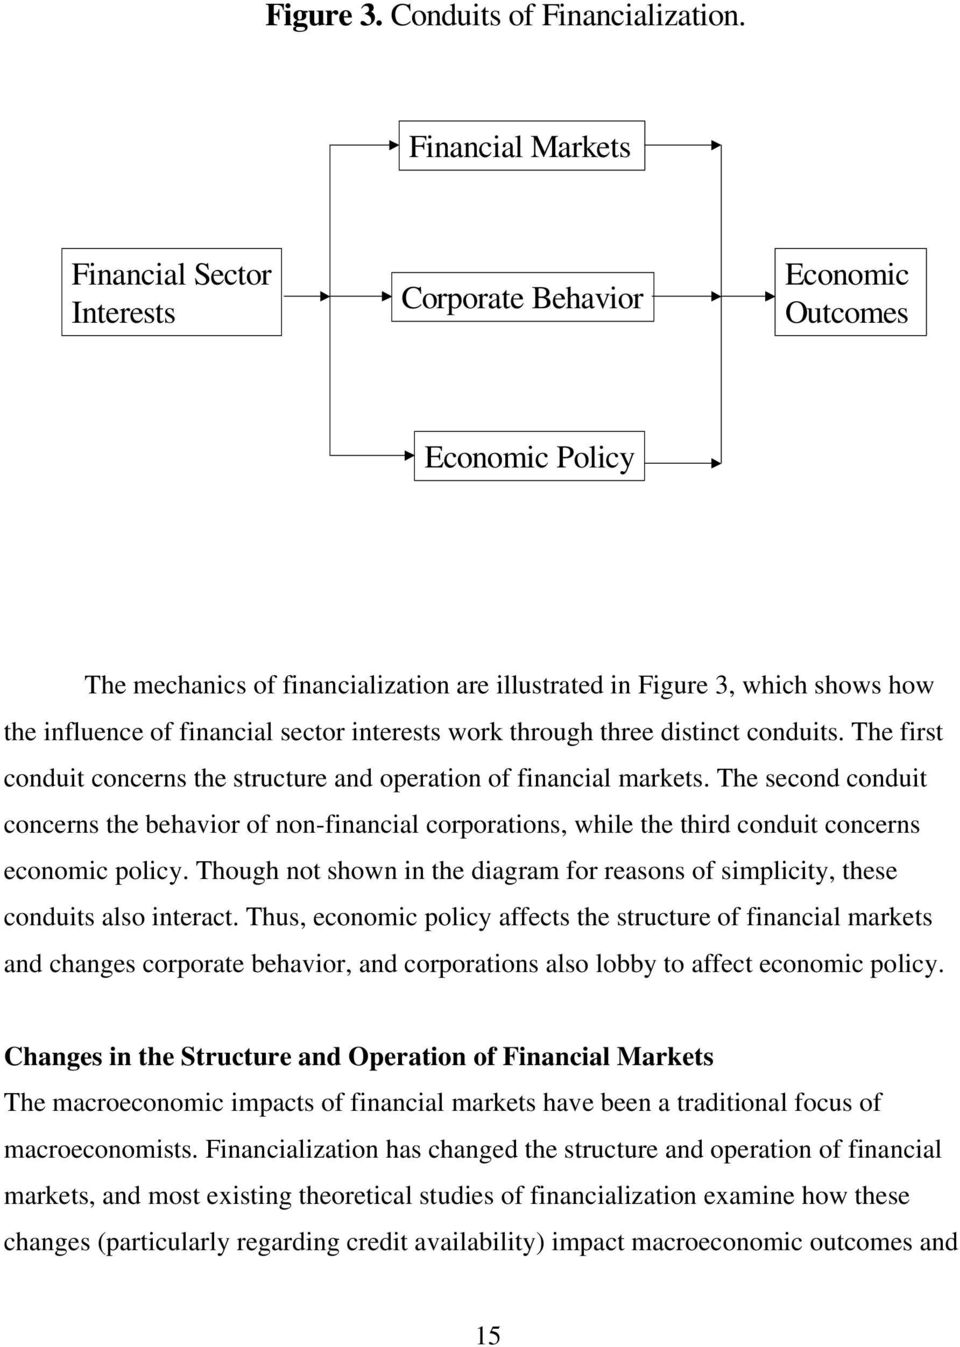 financial sector interests work through three distinct conduits. The first conduit concerns the structure and operation of financial markets.